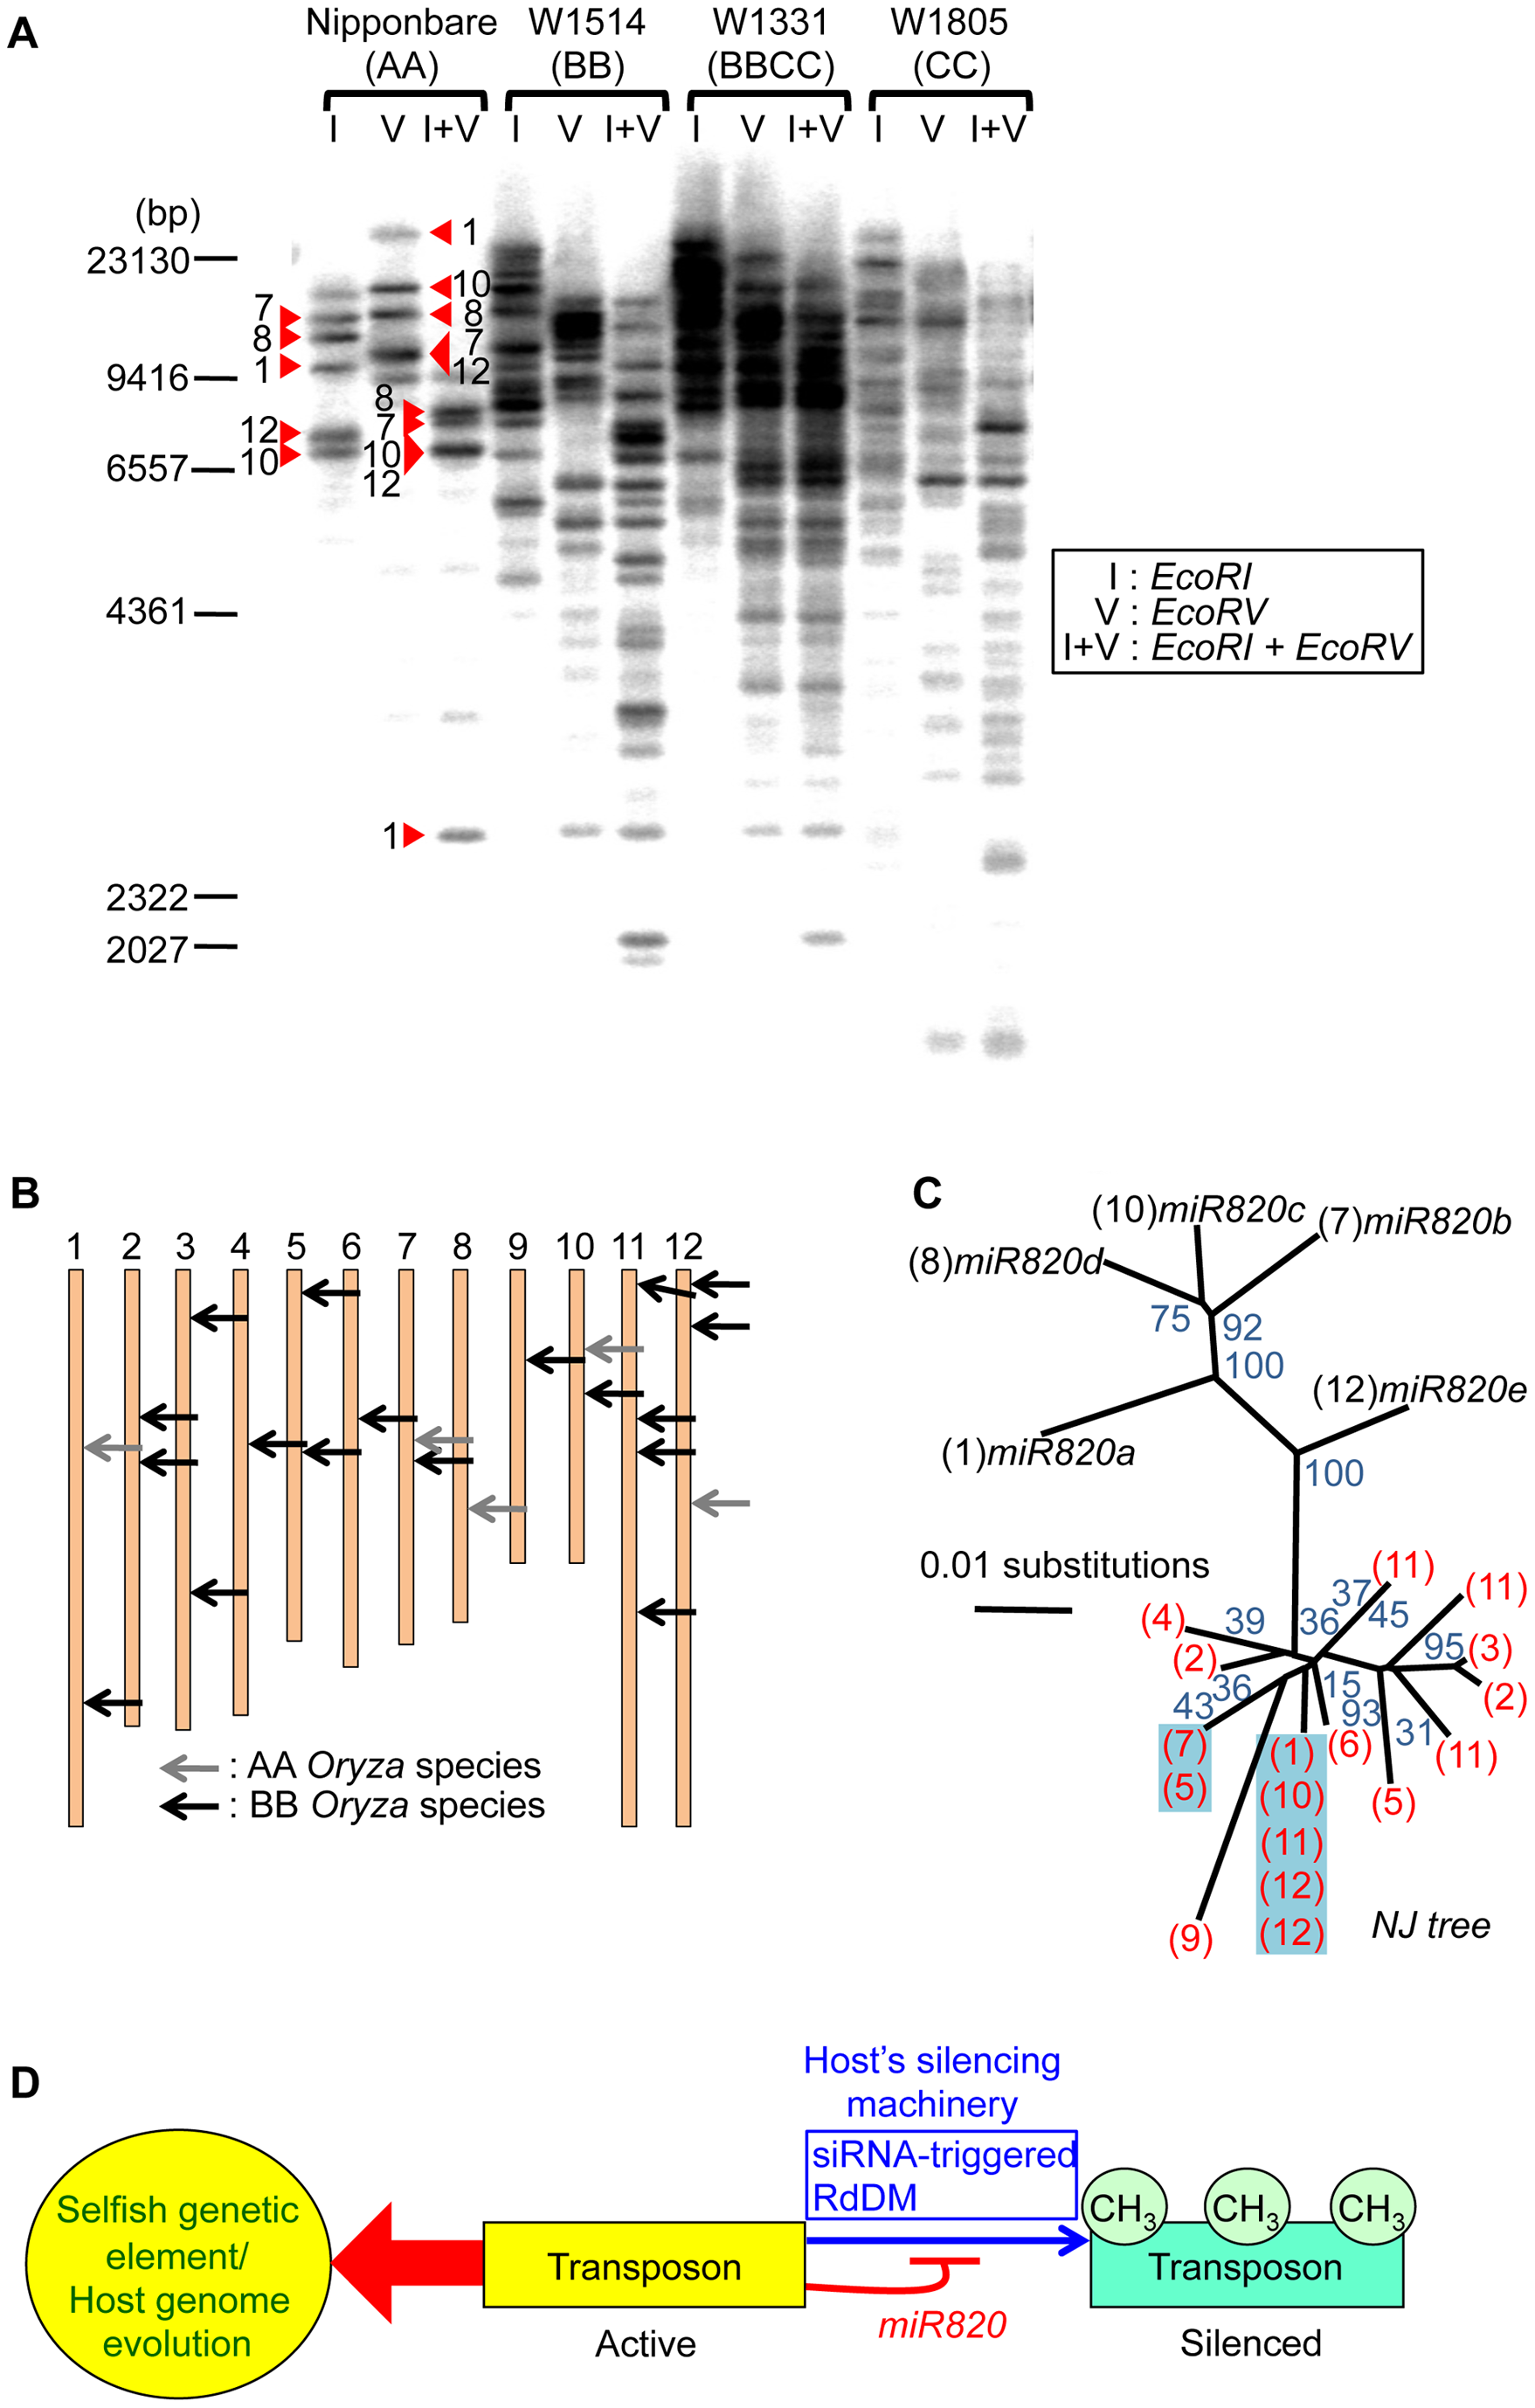 Increased copy number of CACTA carrying <i>pre-miR820</i> in the BB/BBCC genome.